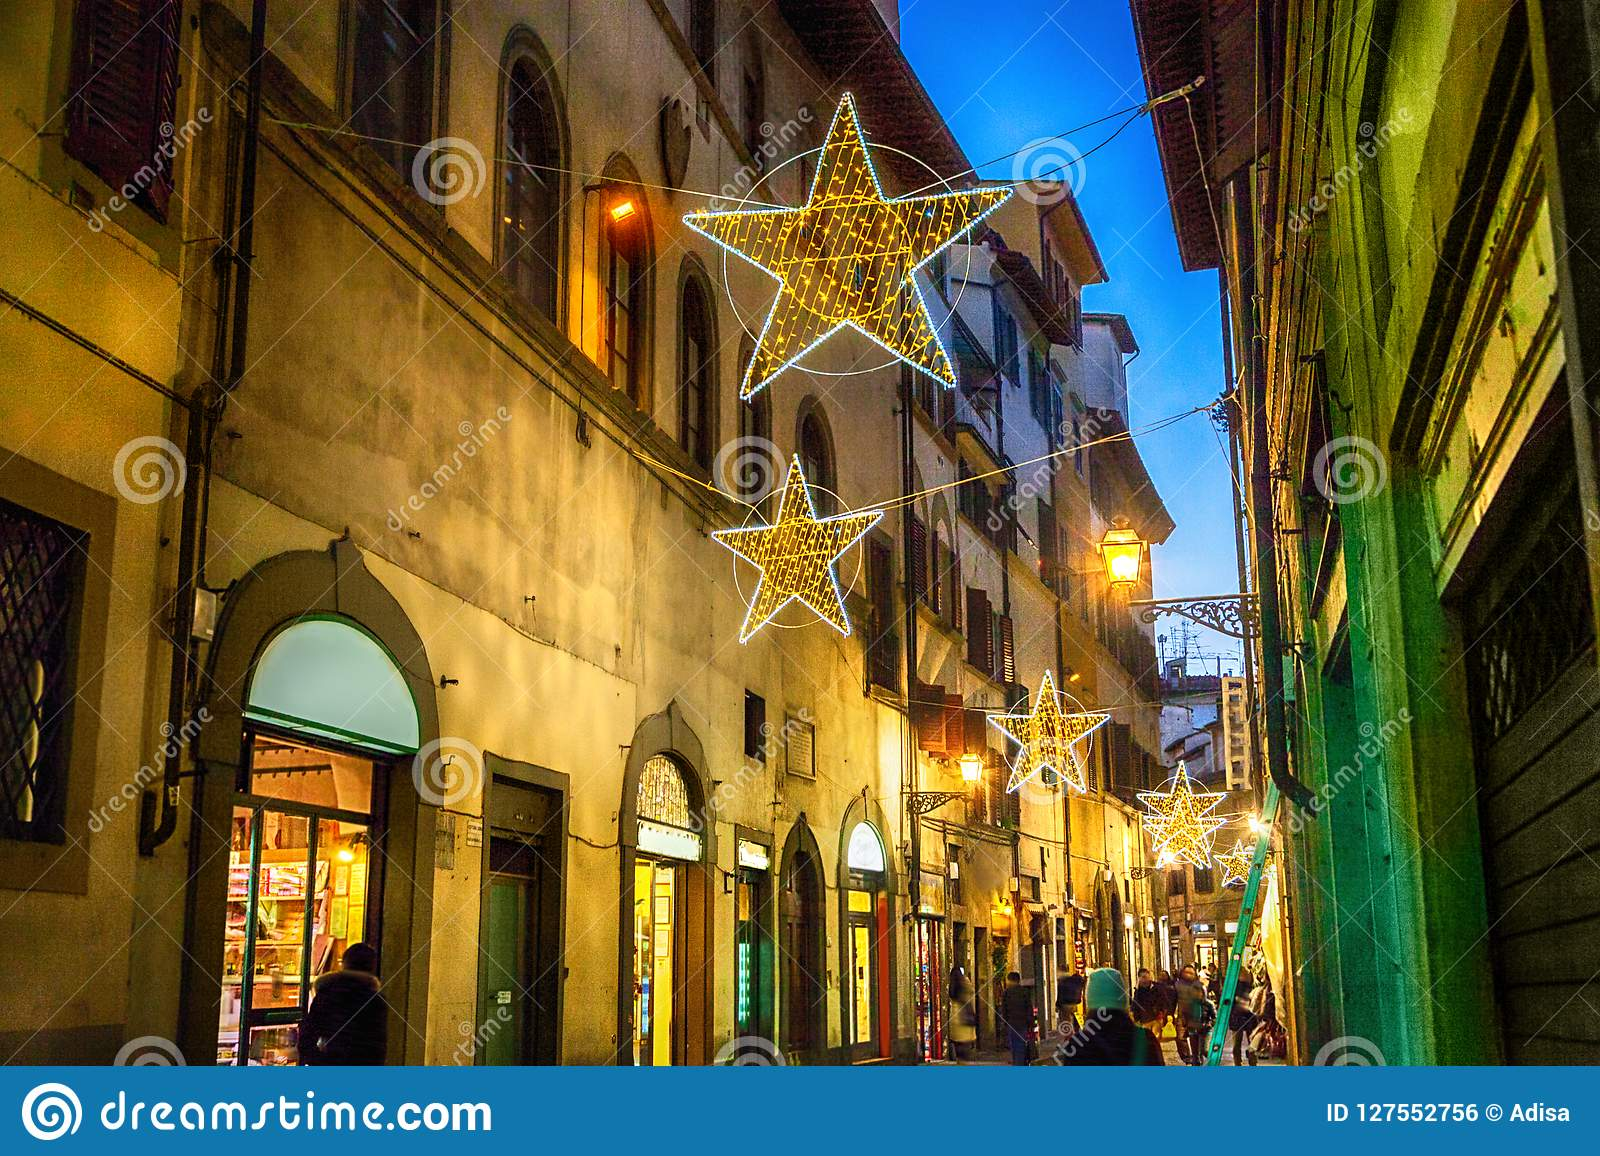 Christmas In Florence Italy.Illuminated Christmas Street In Florence Stock Photo Image